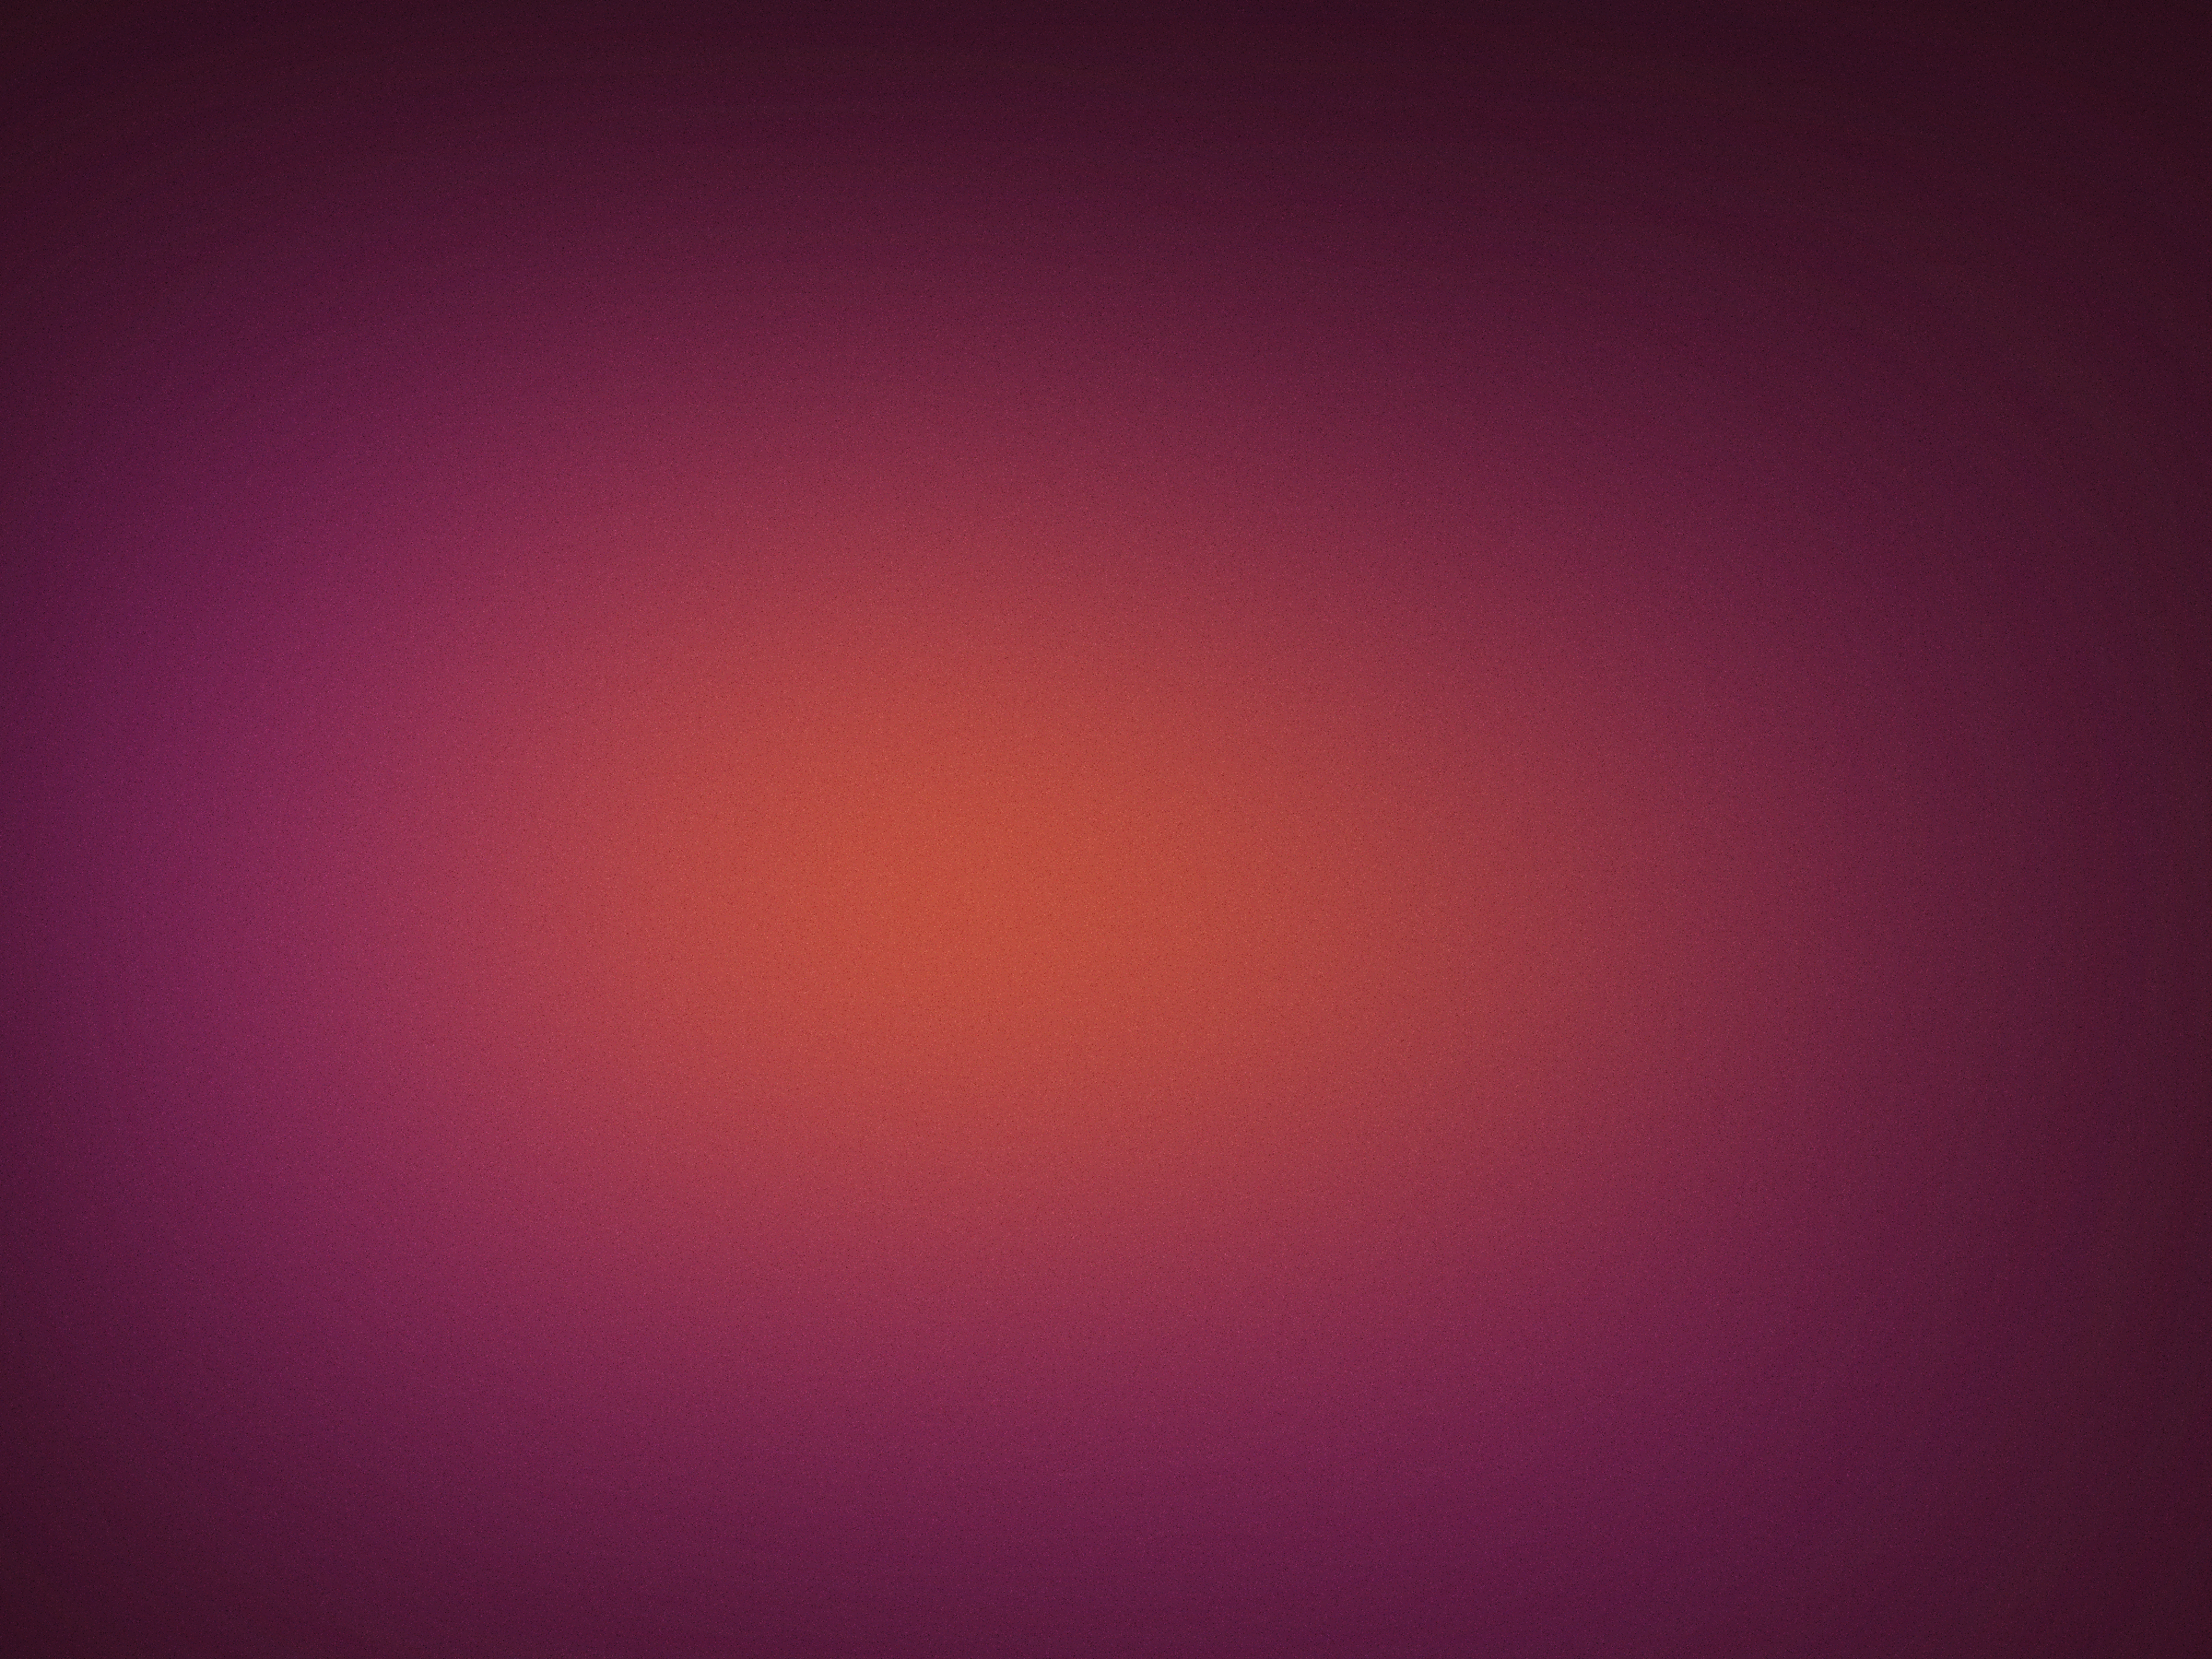 Ubuntu Concept Wallpaper by spiceofdesign